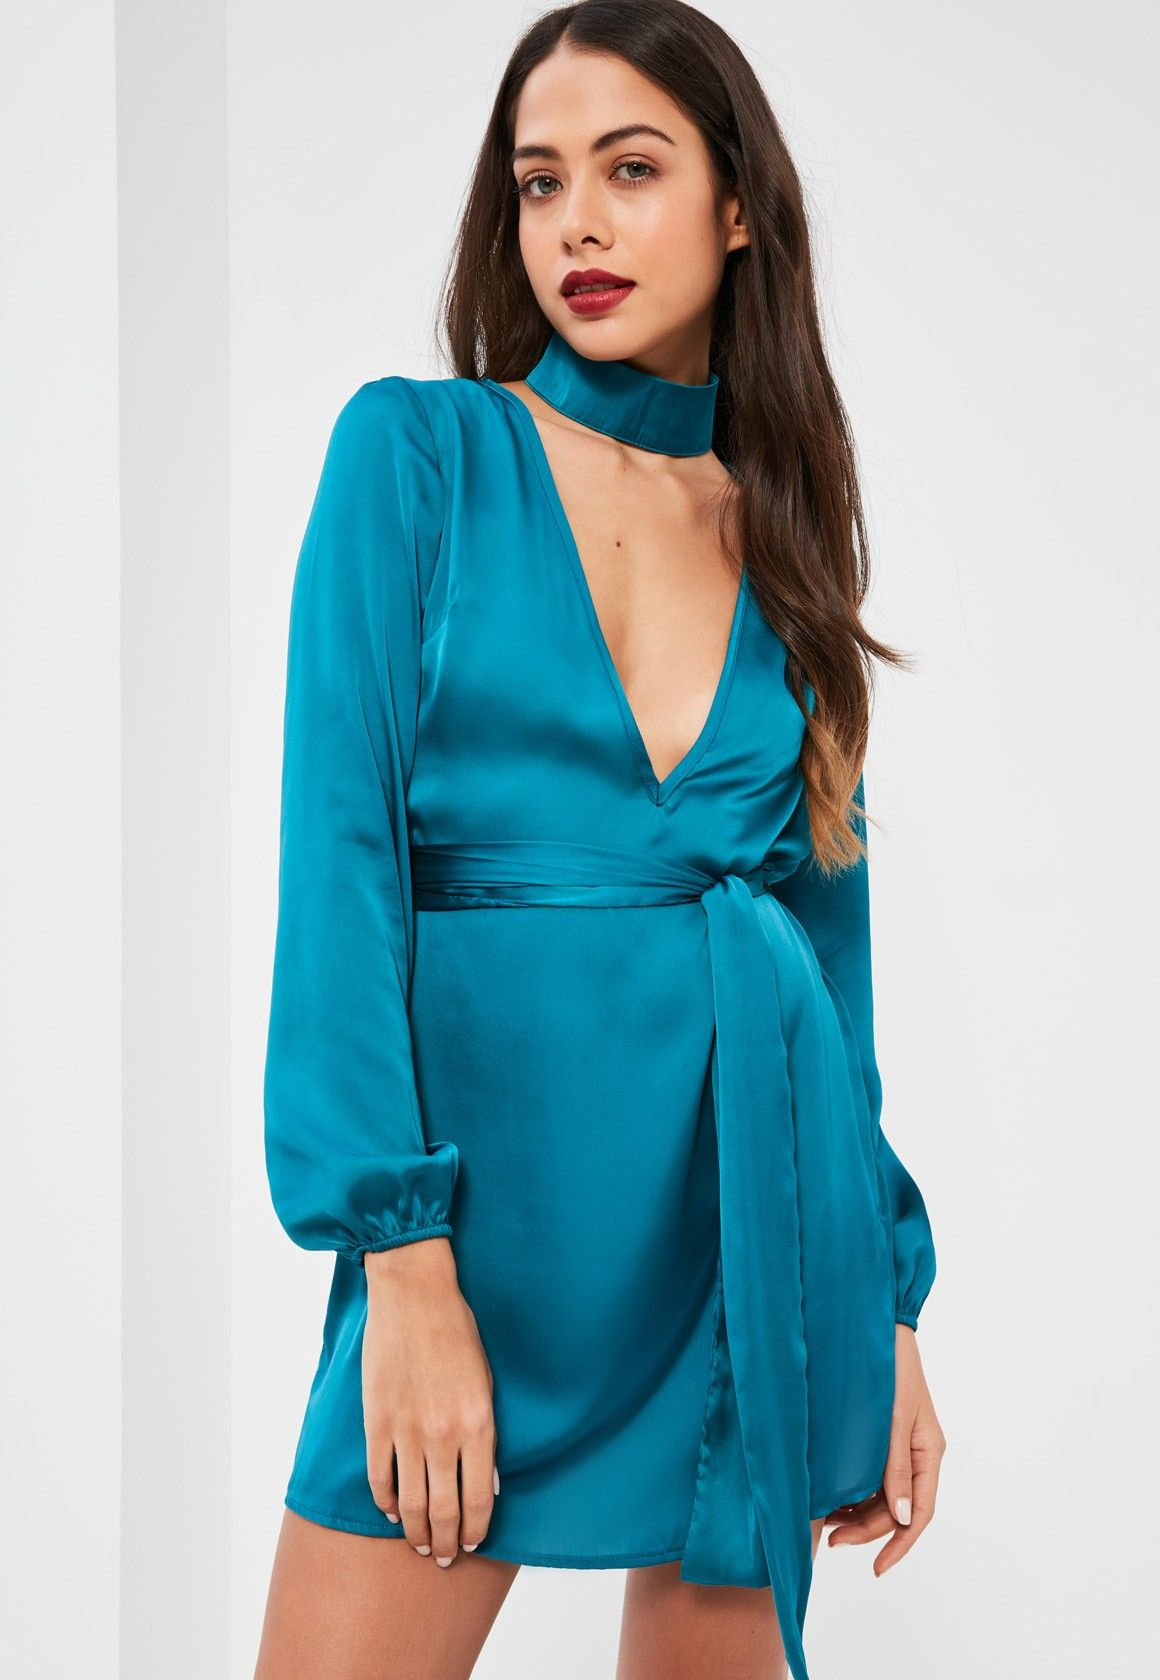 Missguided - Blue Silky Choker Neck Swing Dress | Apparel ...